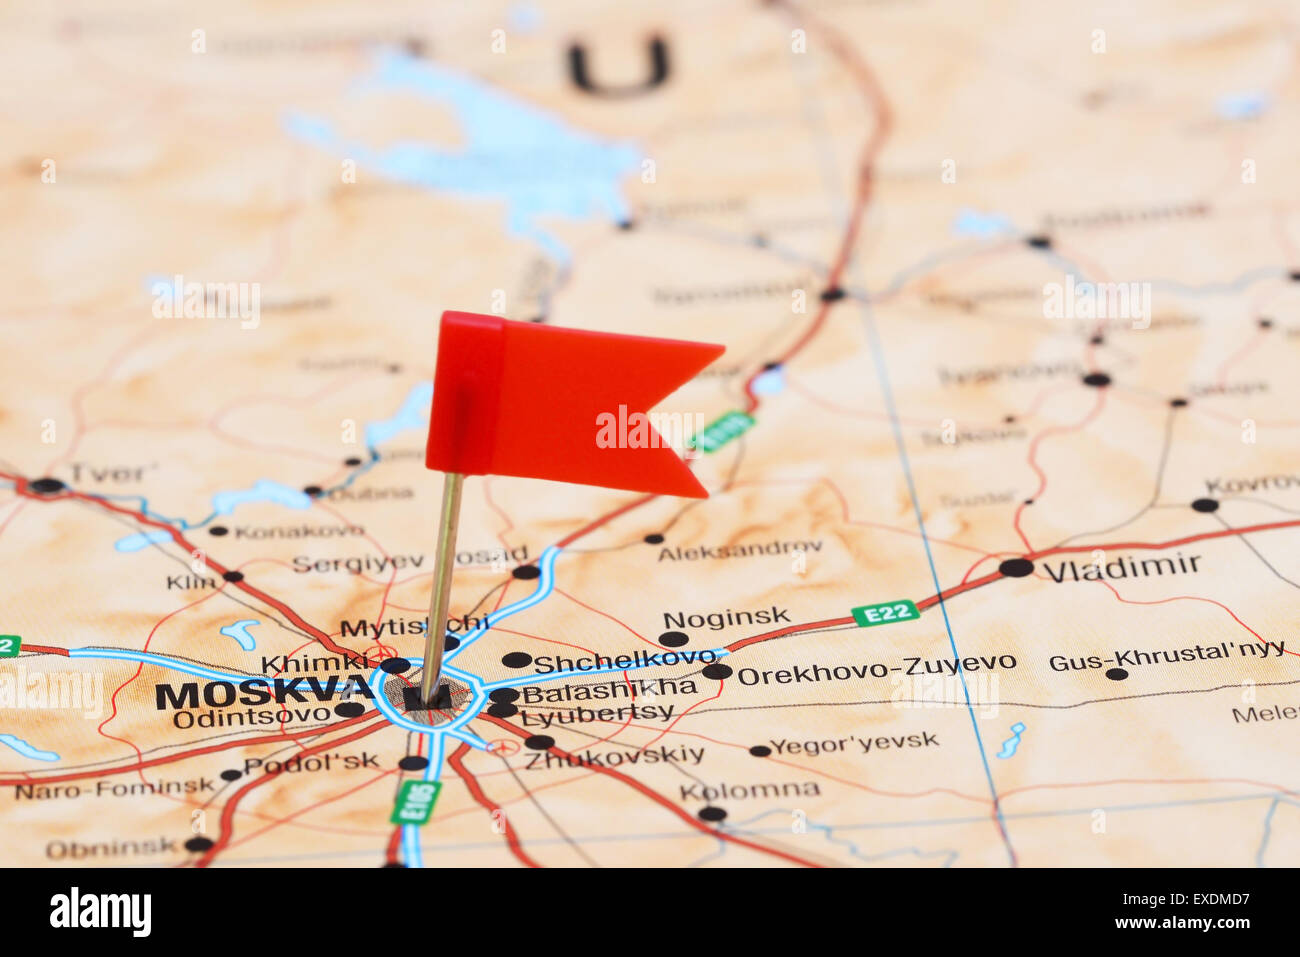 Moscow Pinned On A Map Of Europe Stock Photo 85123955 Alamy